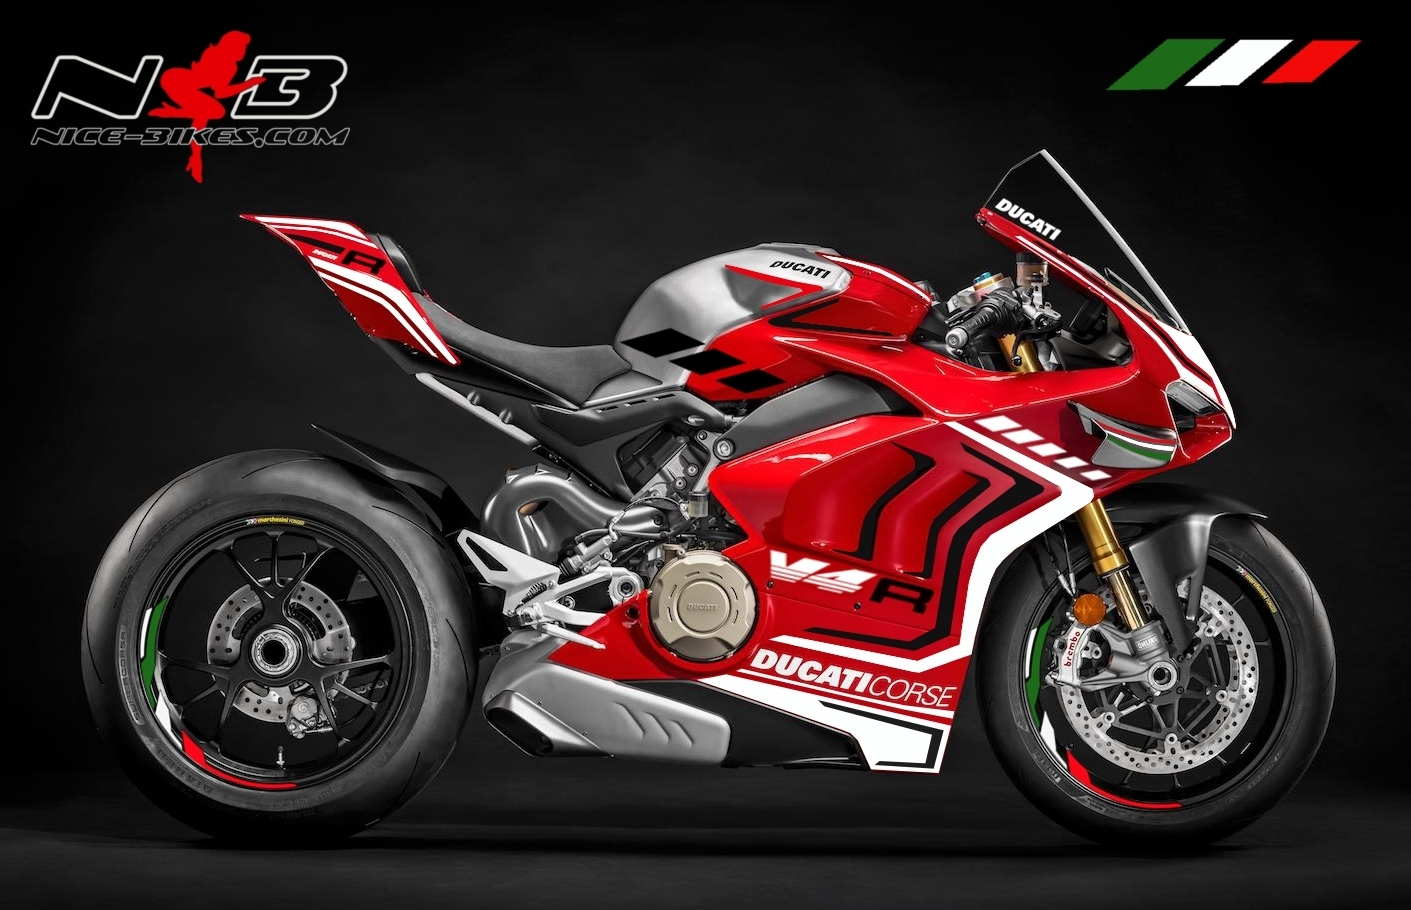 Panigale V4R tricolor auf roter Mashine